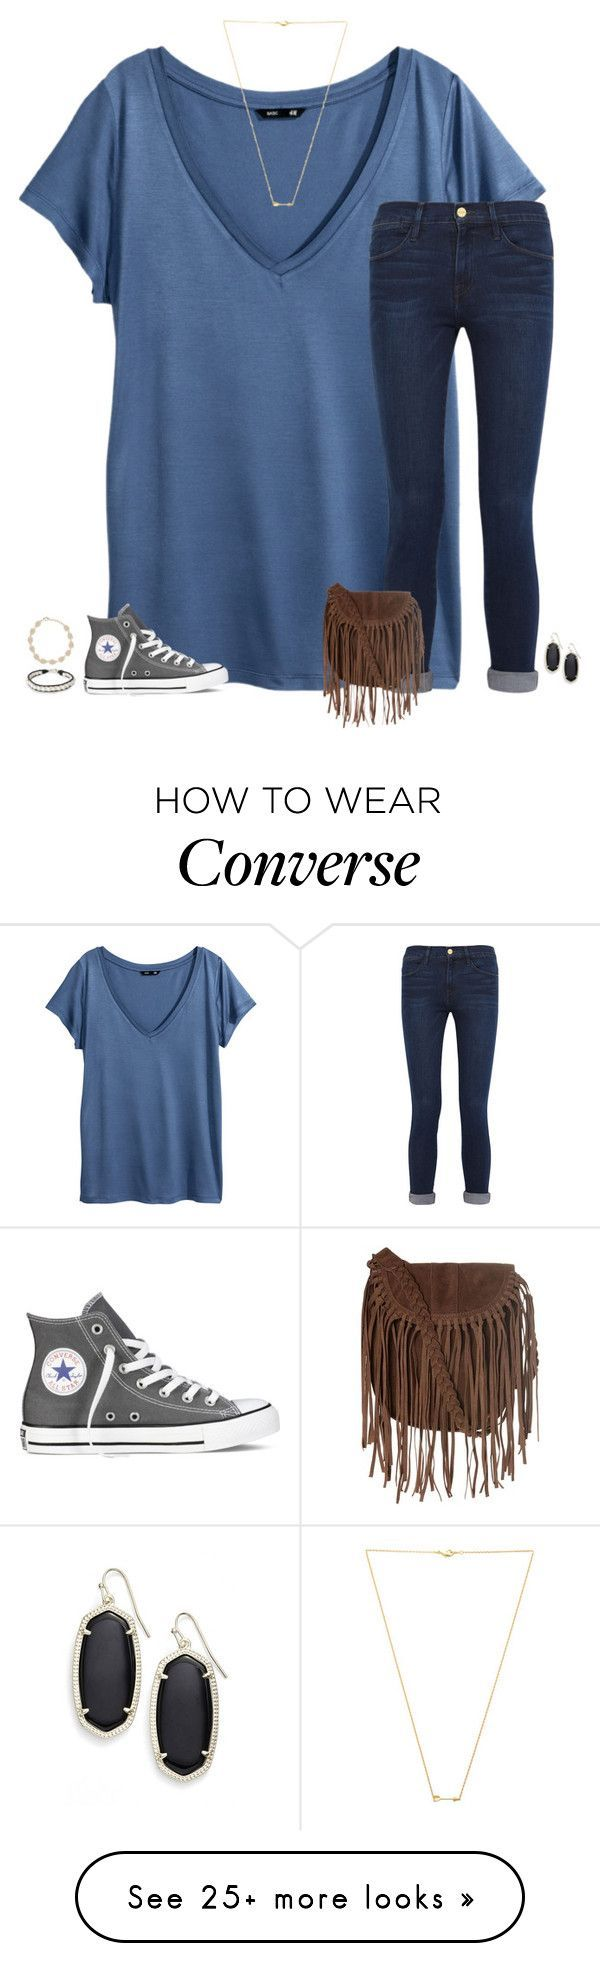 friend set for Eva S.-carol by secfashion13 on Polyvore featuring HM, Frame Denim, Wanderlust   Co, Converse, Kendra Scott, Glamorous and NOVICA